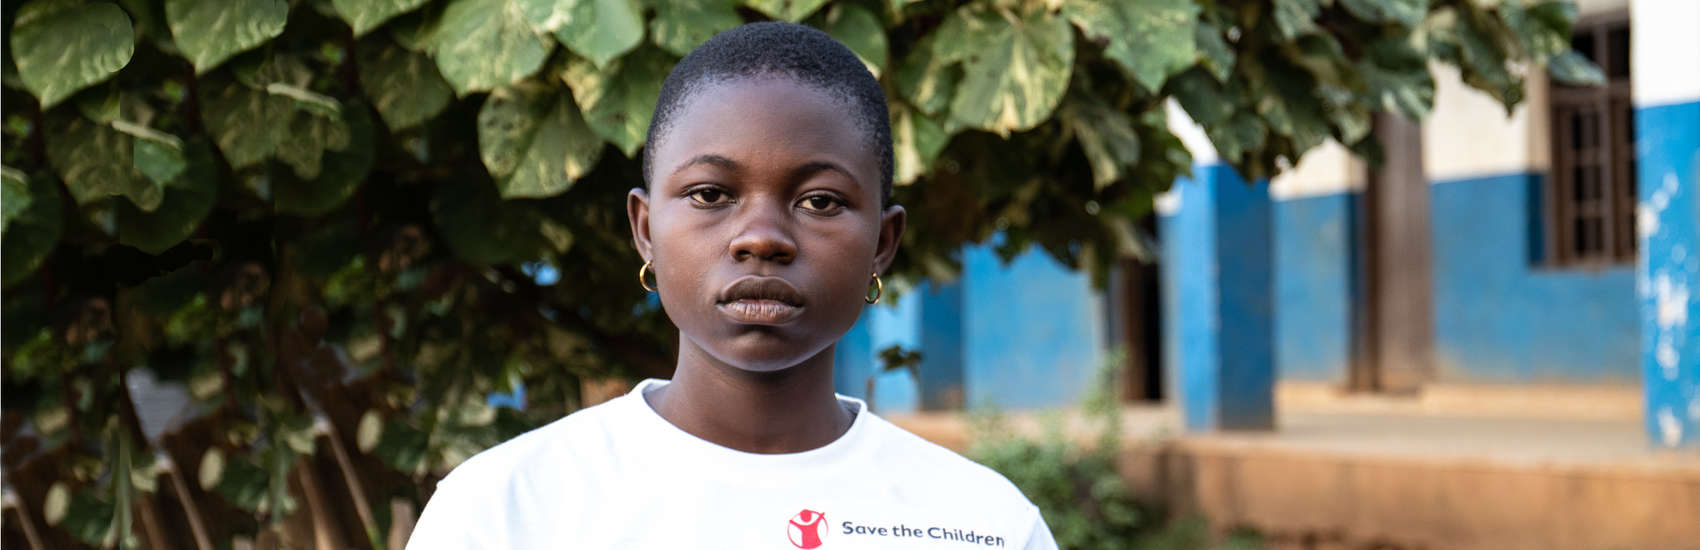 "A 13-year old girl named Stephanie wears a white Save the Children t-shirt with the word ""Ebola"" printed on it. She is standing outside of a blue building. Stephanie lives in North Kivu and has attended one of Save the Children's Ebola awareness classes where she learnt how to protect herself from the disease. North Kivu has experienced years of conflict and is currently the site of the world's second largest Ebola virus disease outbreak. Photo credit: Sacha Myers/Save the Children; Feb 2019."